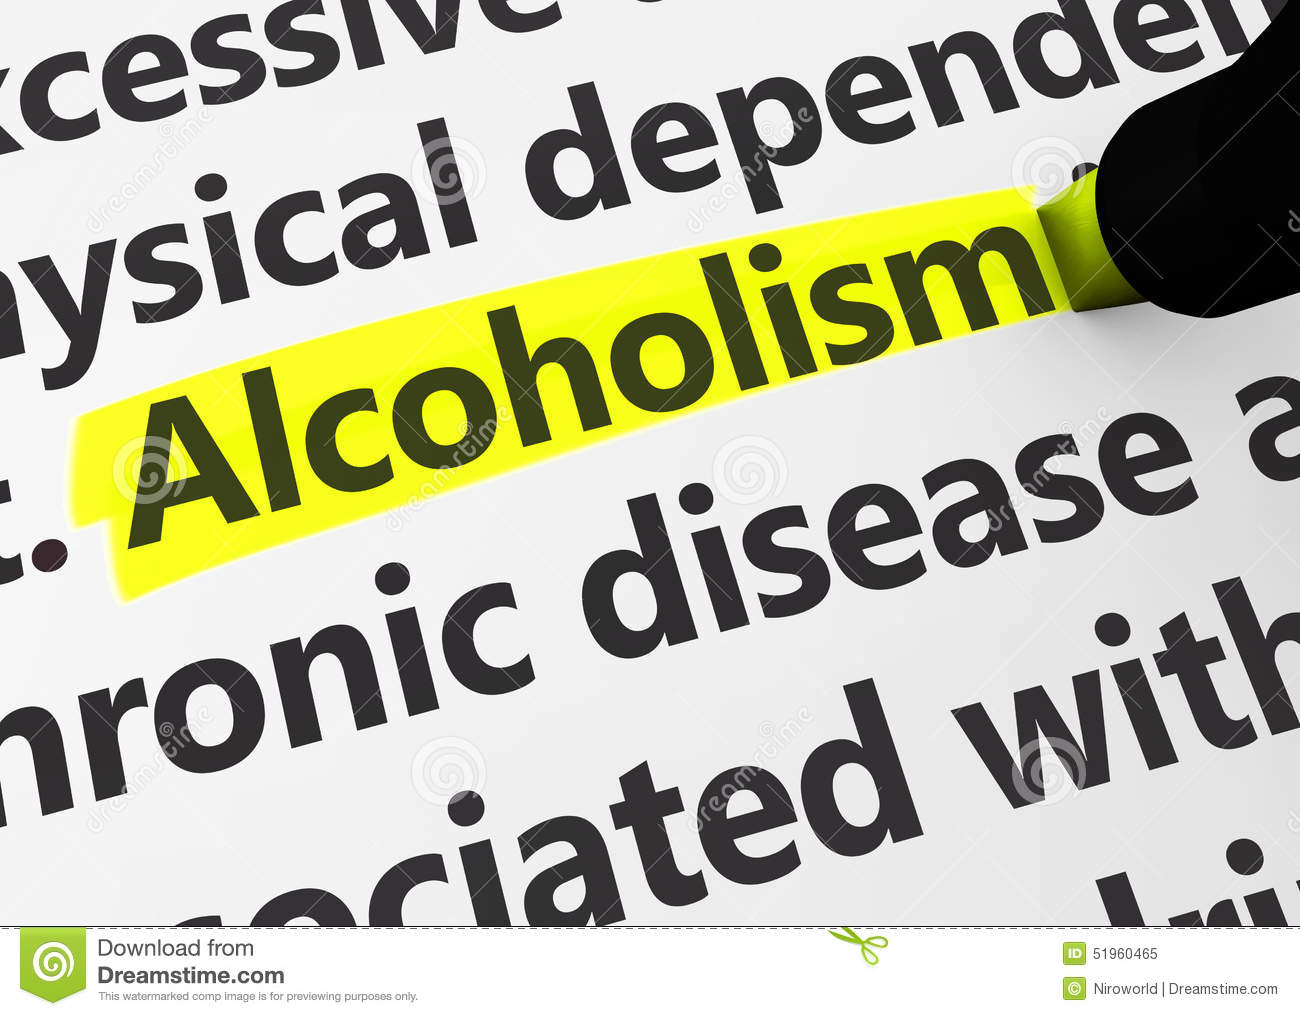 Alcoholism Addiction Social Issues Stock Photo